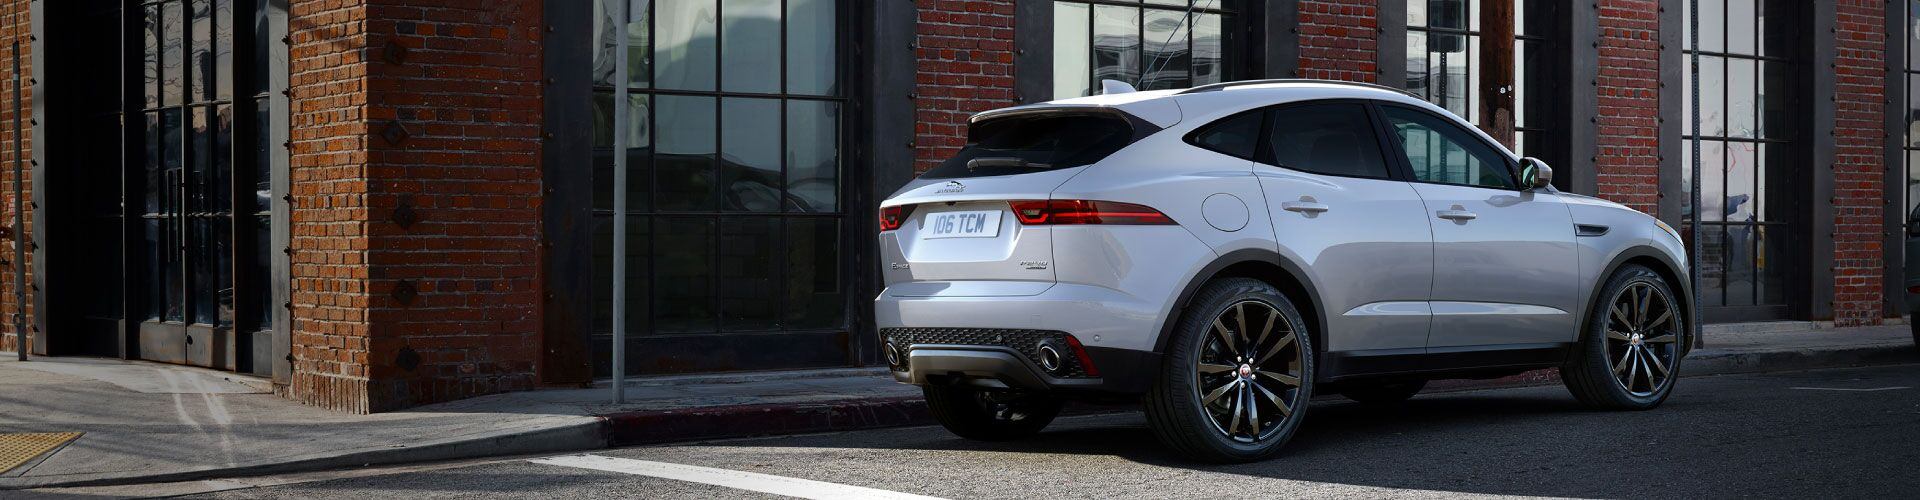 2019 Jaguar E-PACE Offer